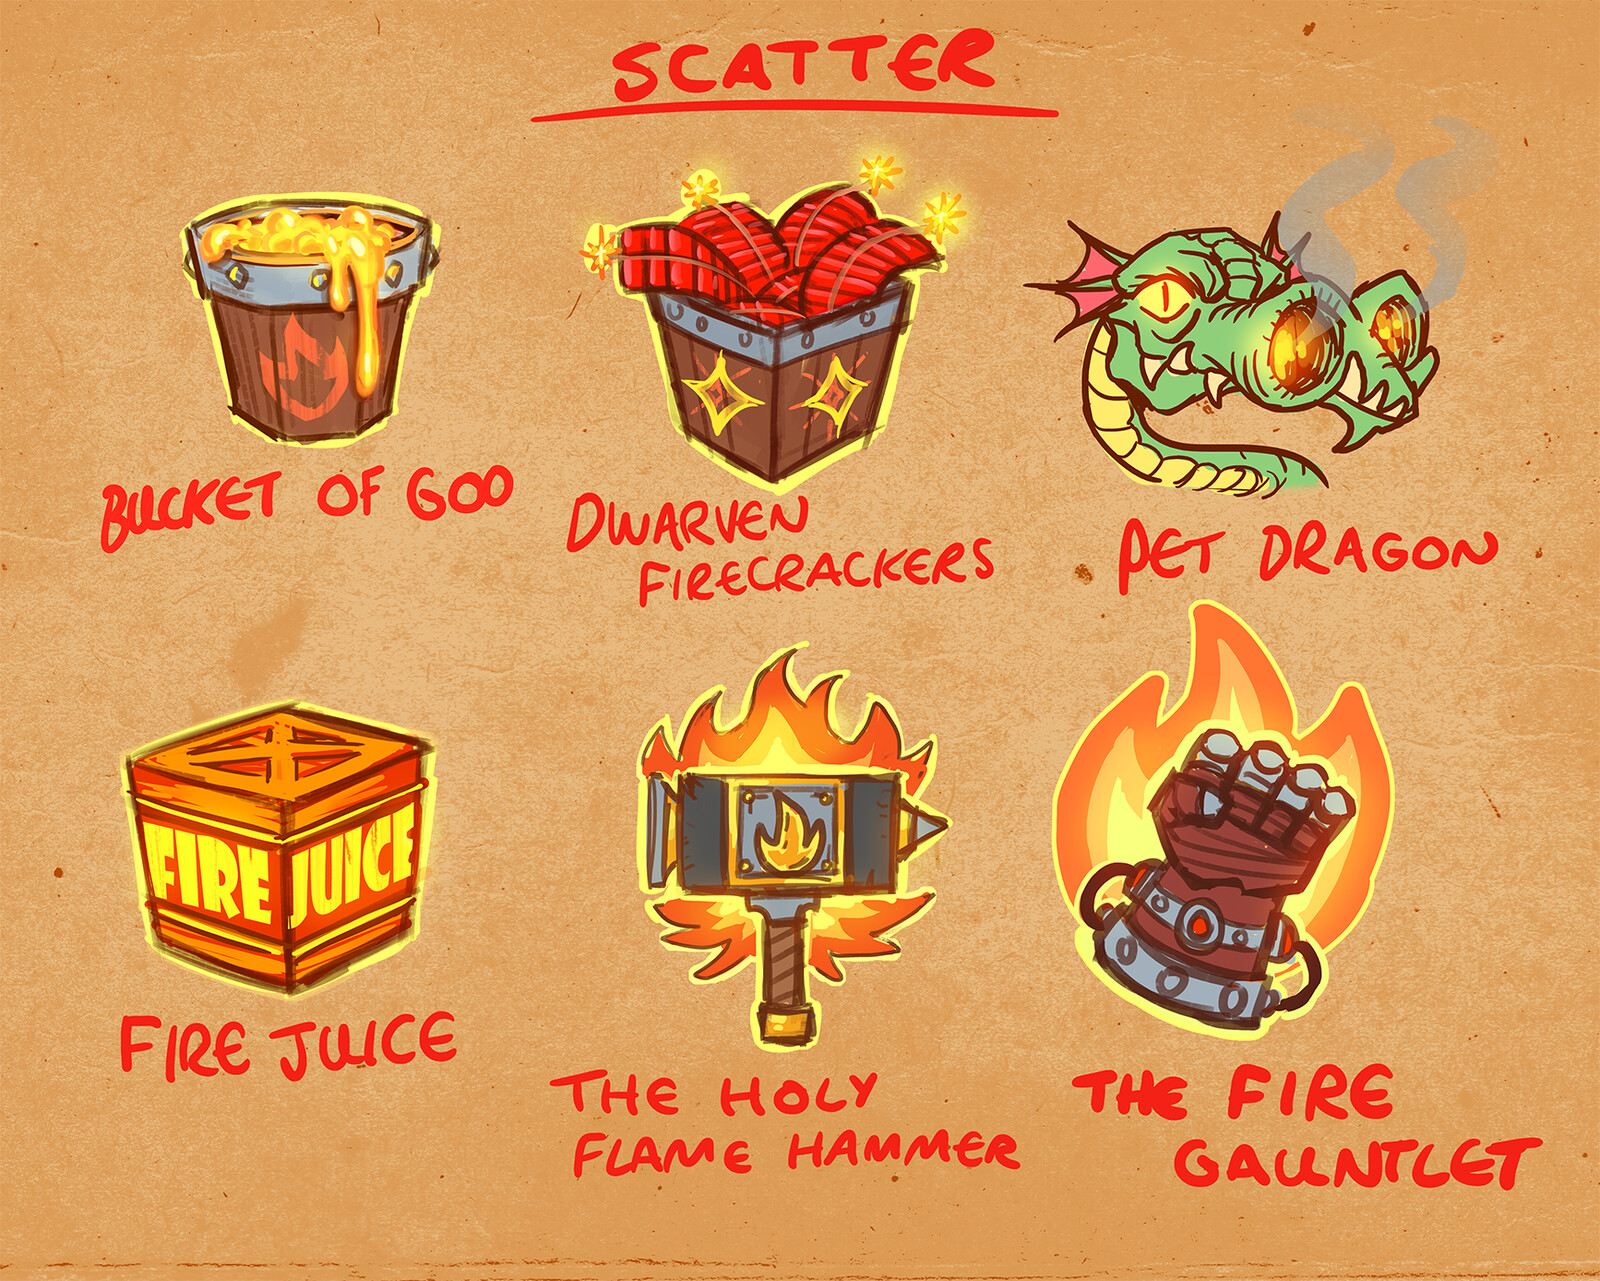 Some very early ideas for the scatter symbol. The Fire Gauntlet ended up having a big impact on the direction of the game.